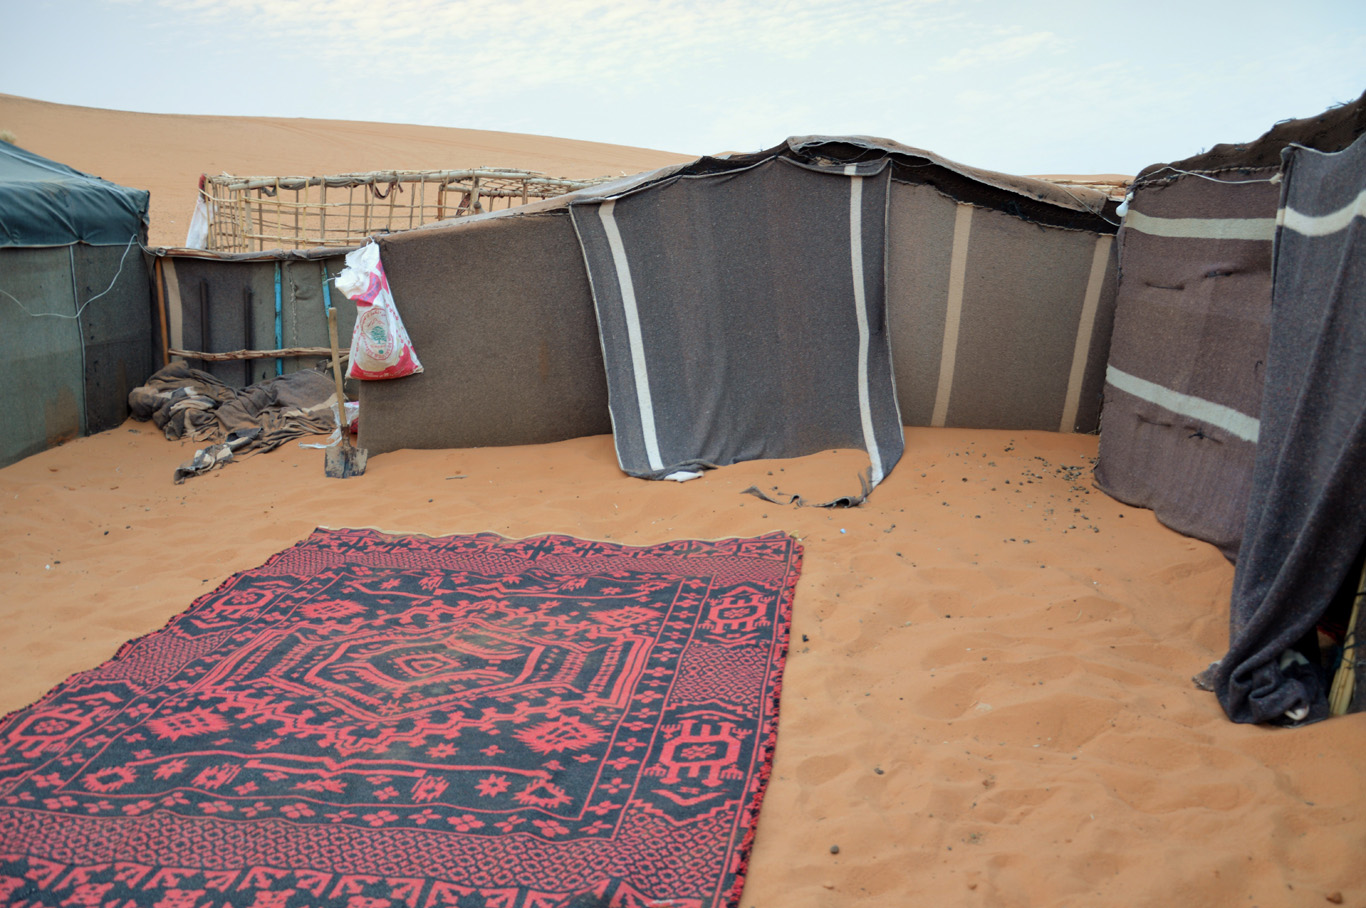 The nomadic tents